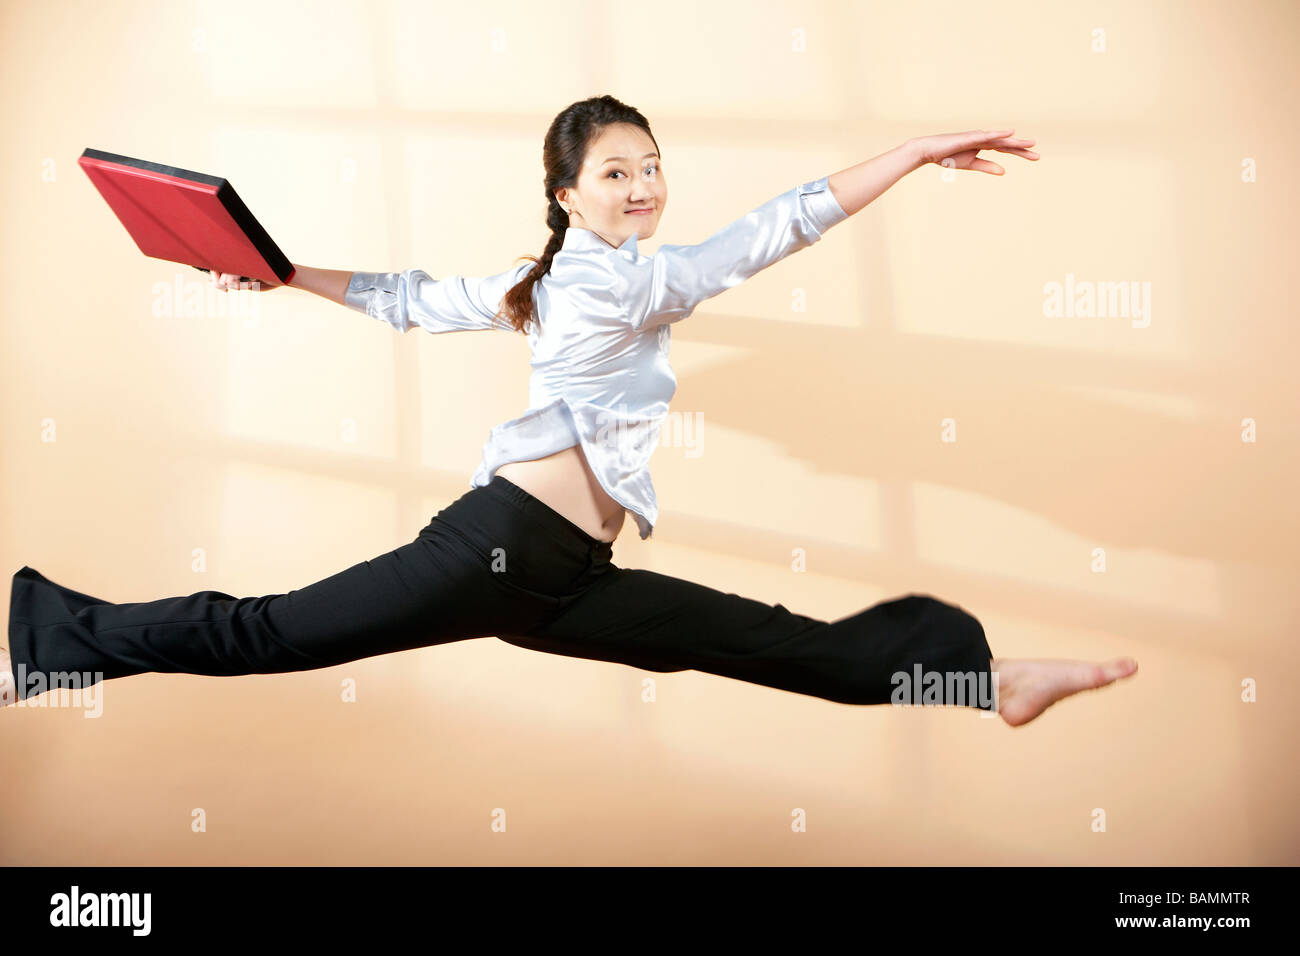 Woman Leaping Through The Air - Stock Image